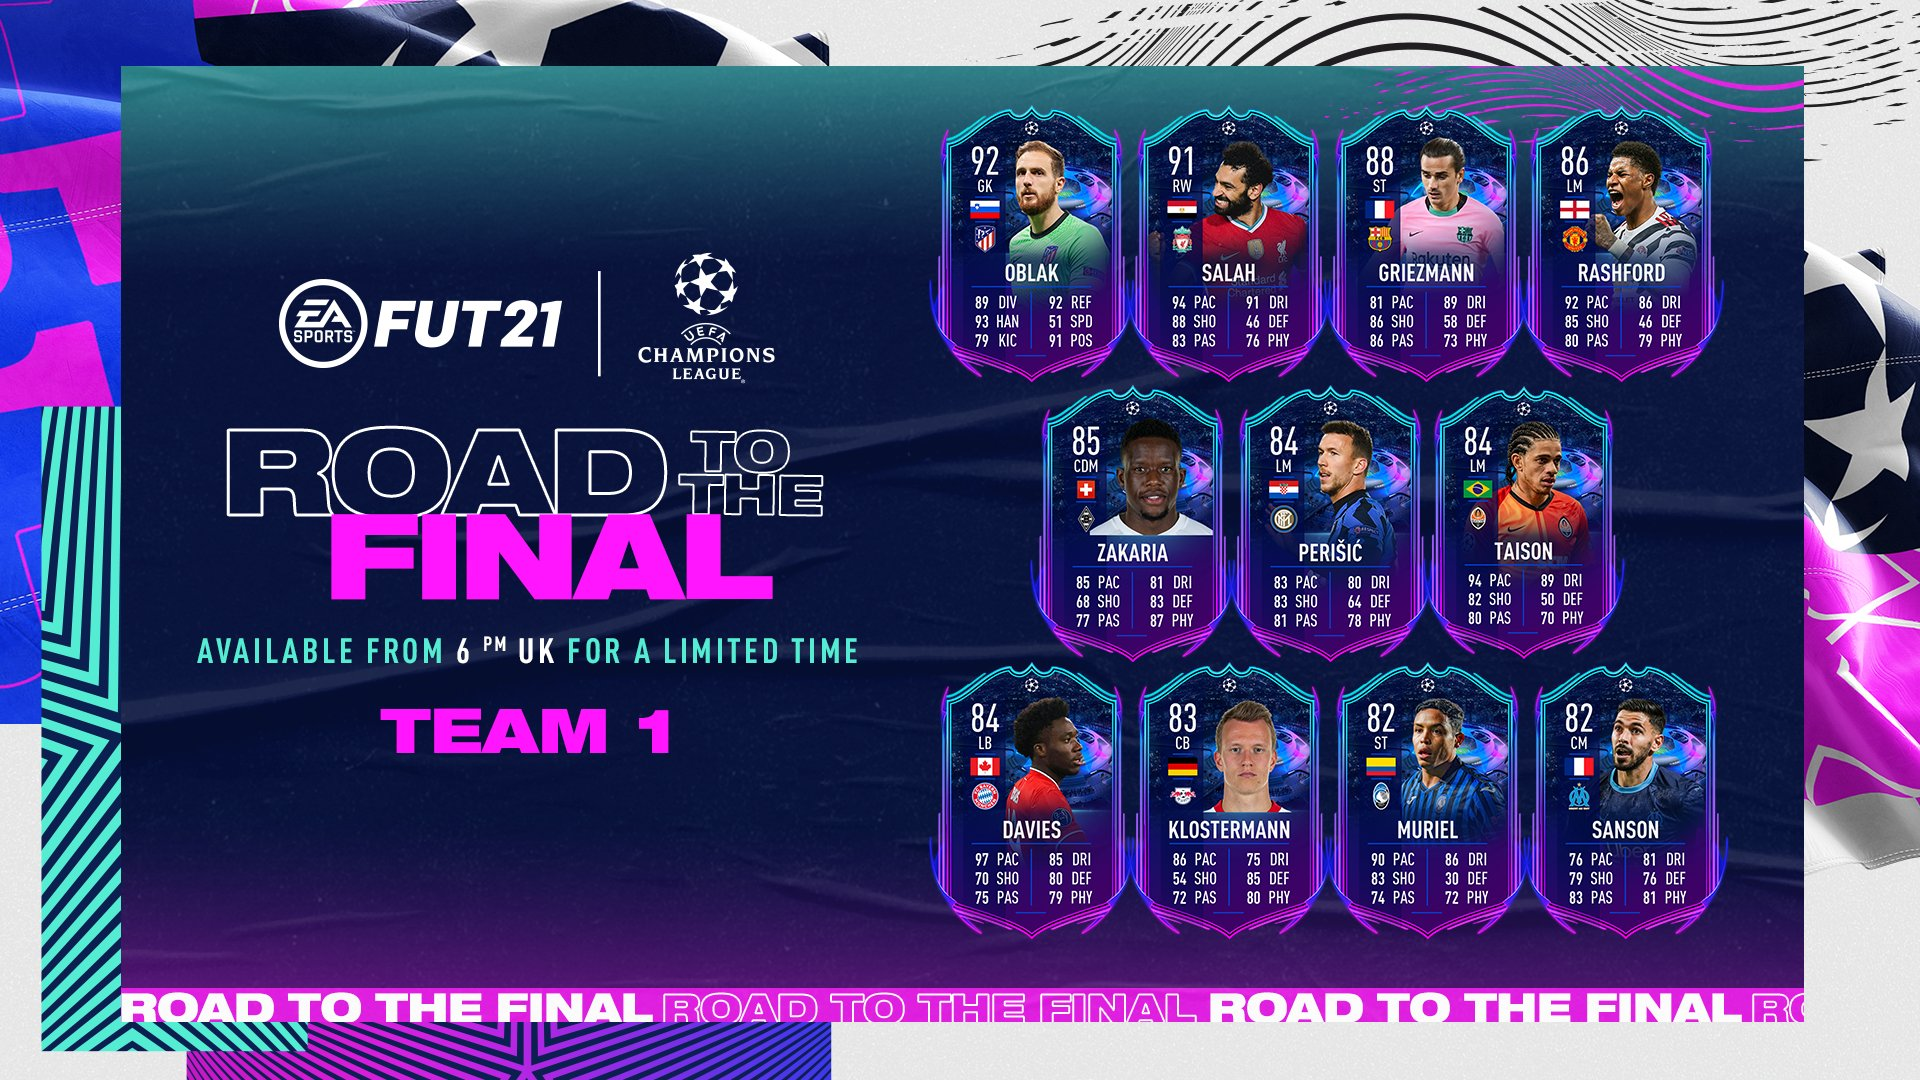 fifa 21 road to the final team 2 live rttf team 2 cards predictions release date and time card designs sbc upgrade dates expected content and everything you need to know fifa 21 road to the final team 2 live